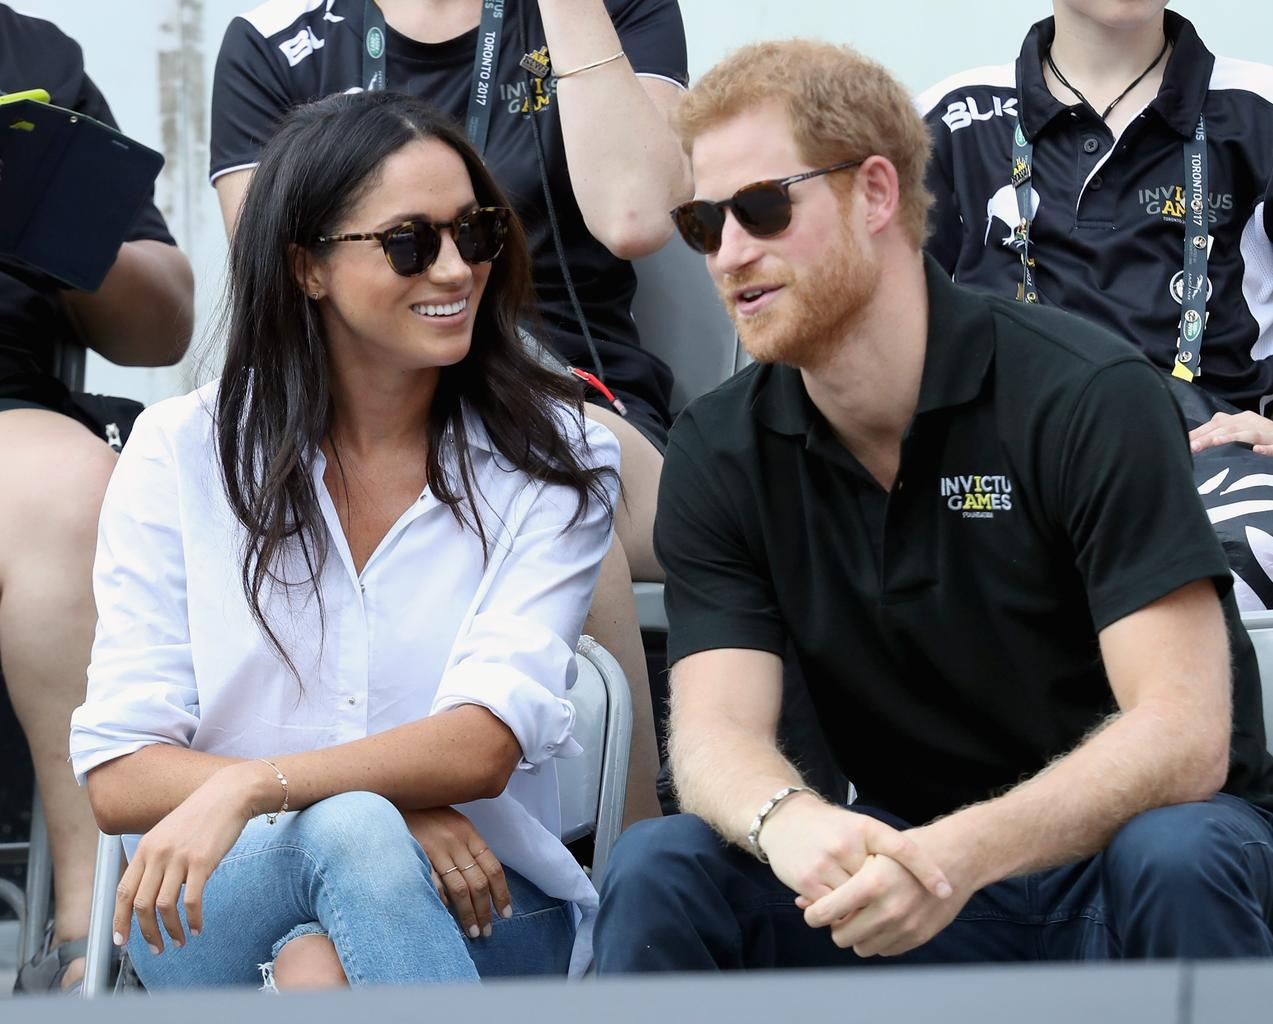 Unfollows And Secret Snubs: Inside The Royal Family's 'Insta